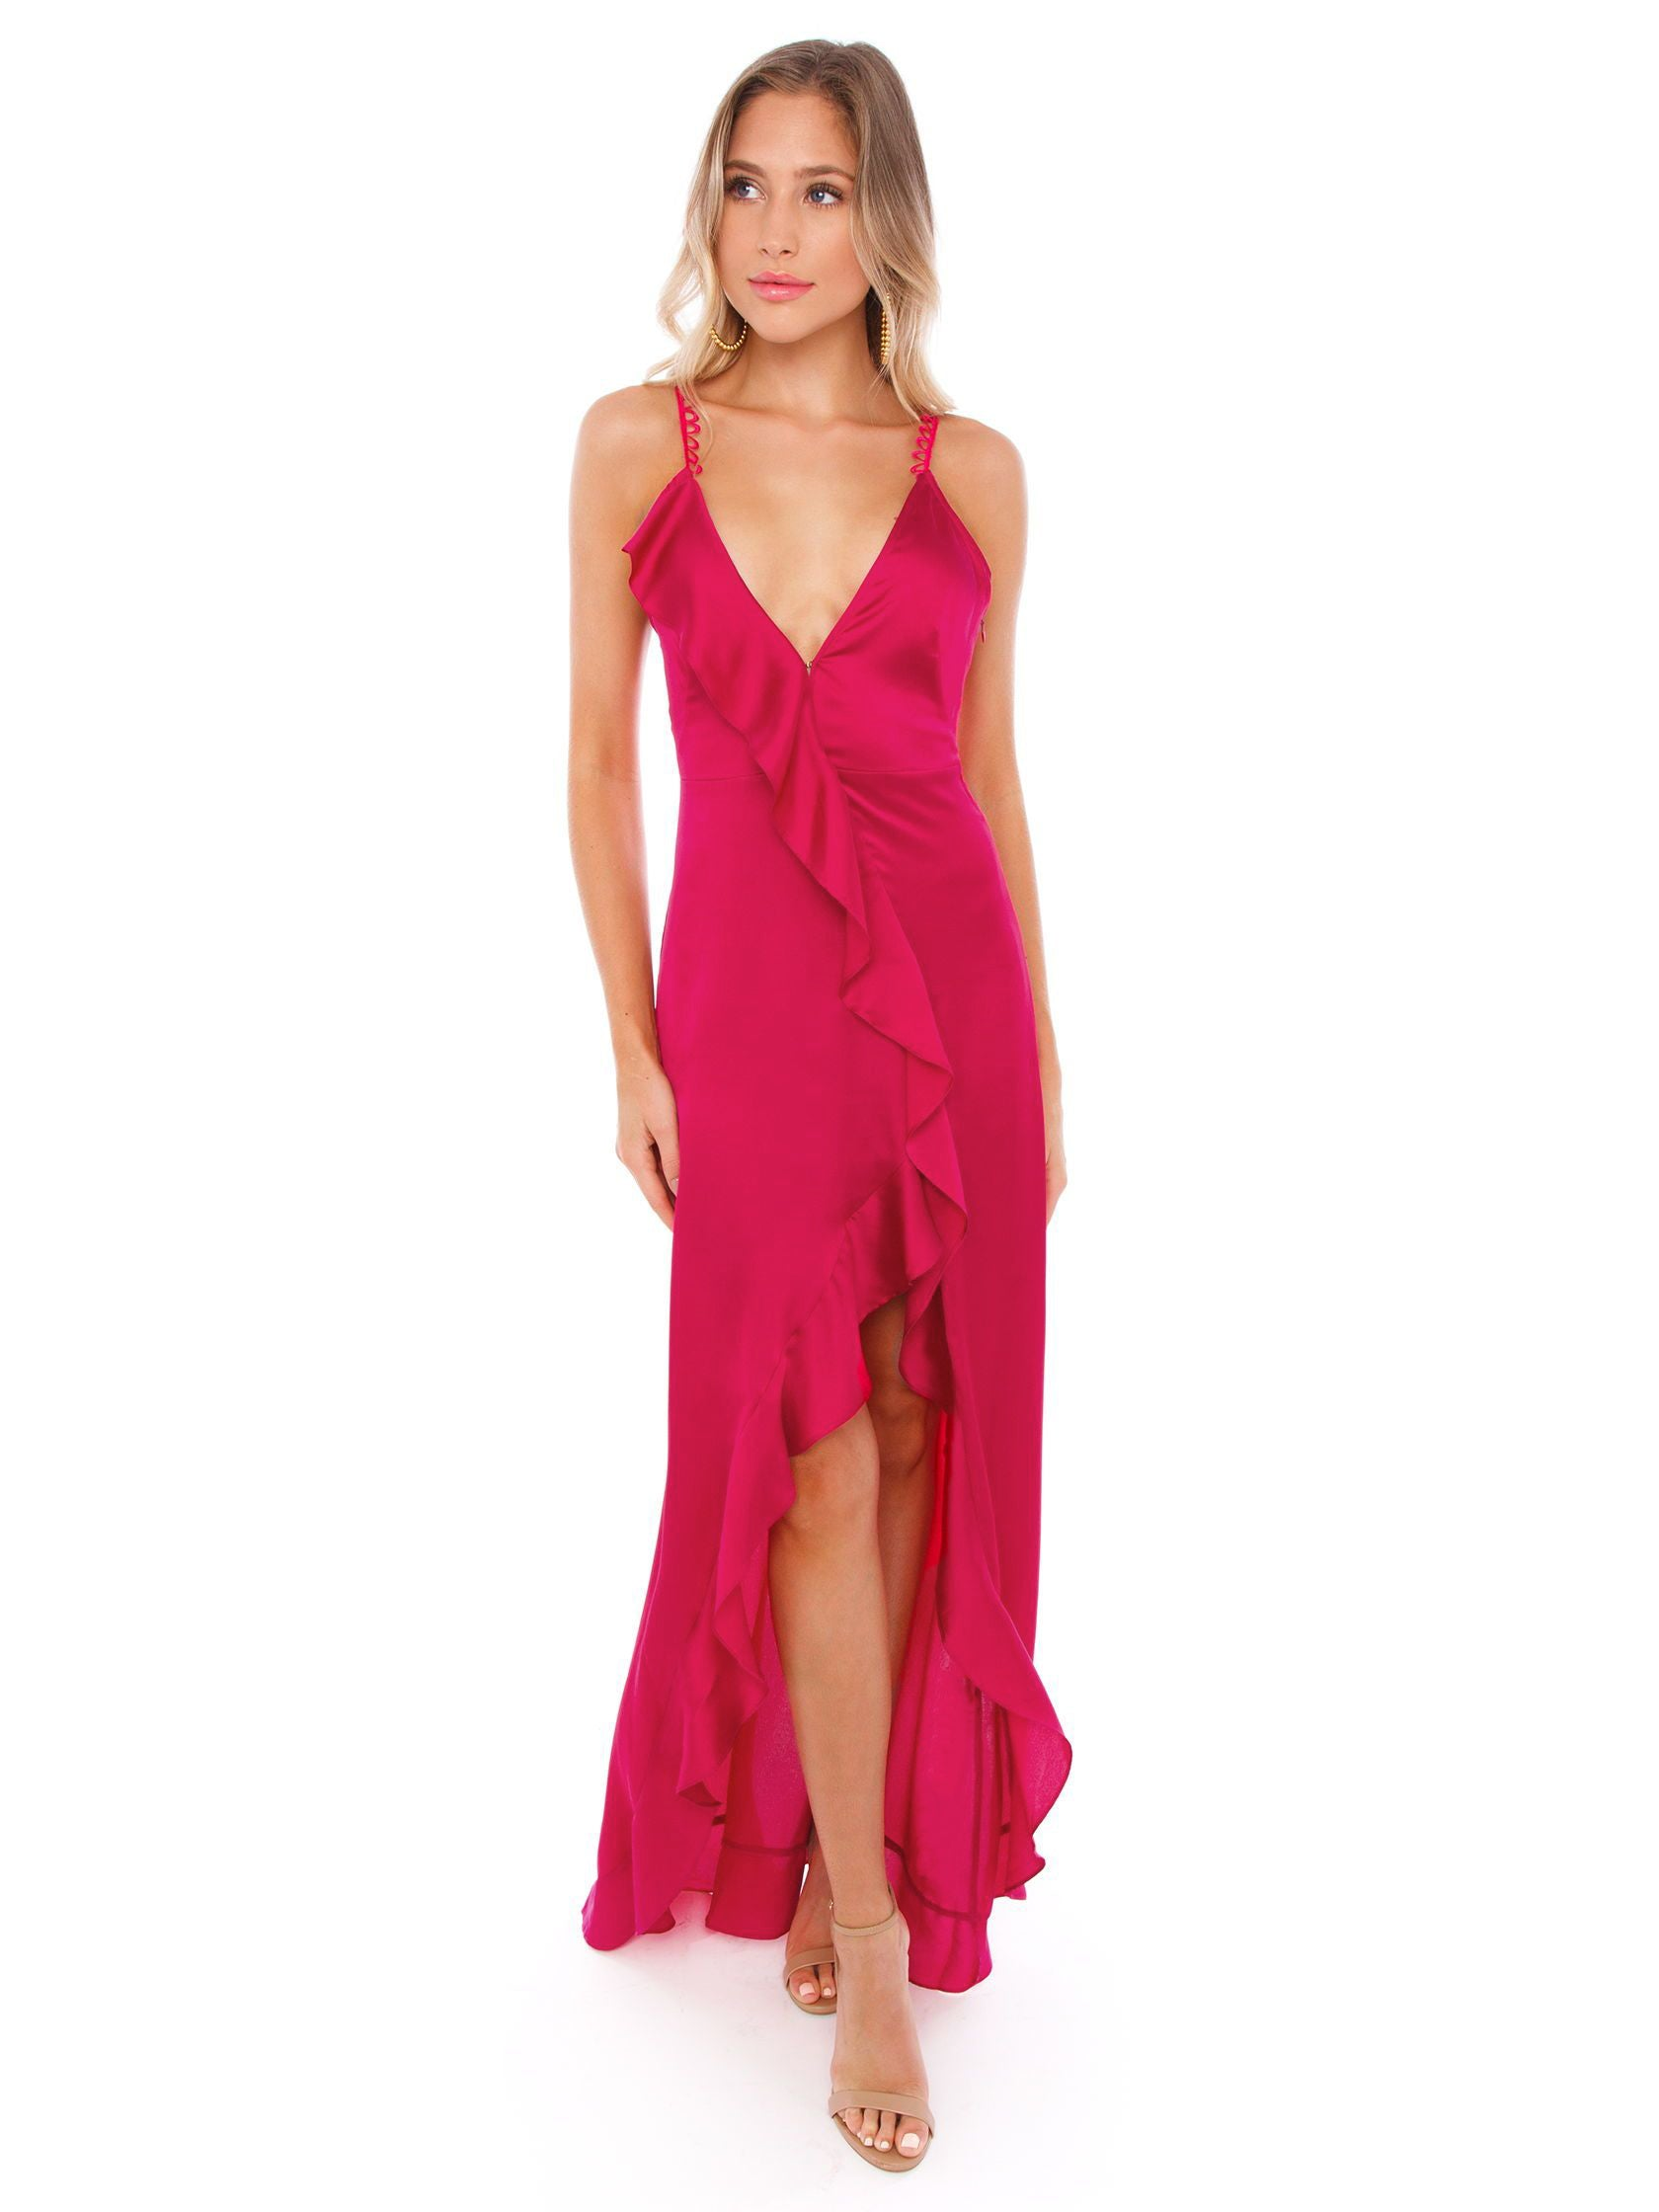 f00b23180f Girl outfit in a dress rental from For Love   Lemons called Isabella  Ruffled Maxi Dress